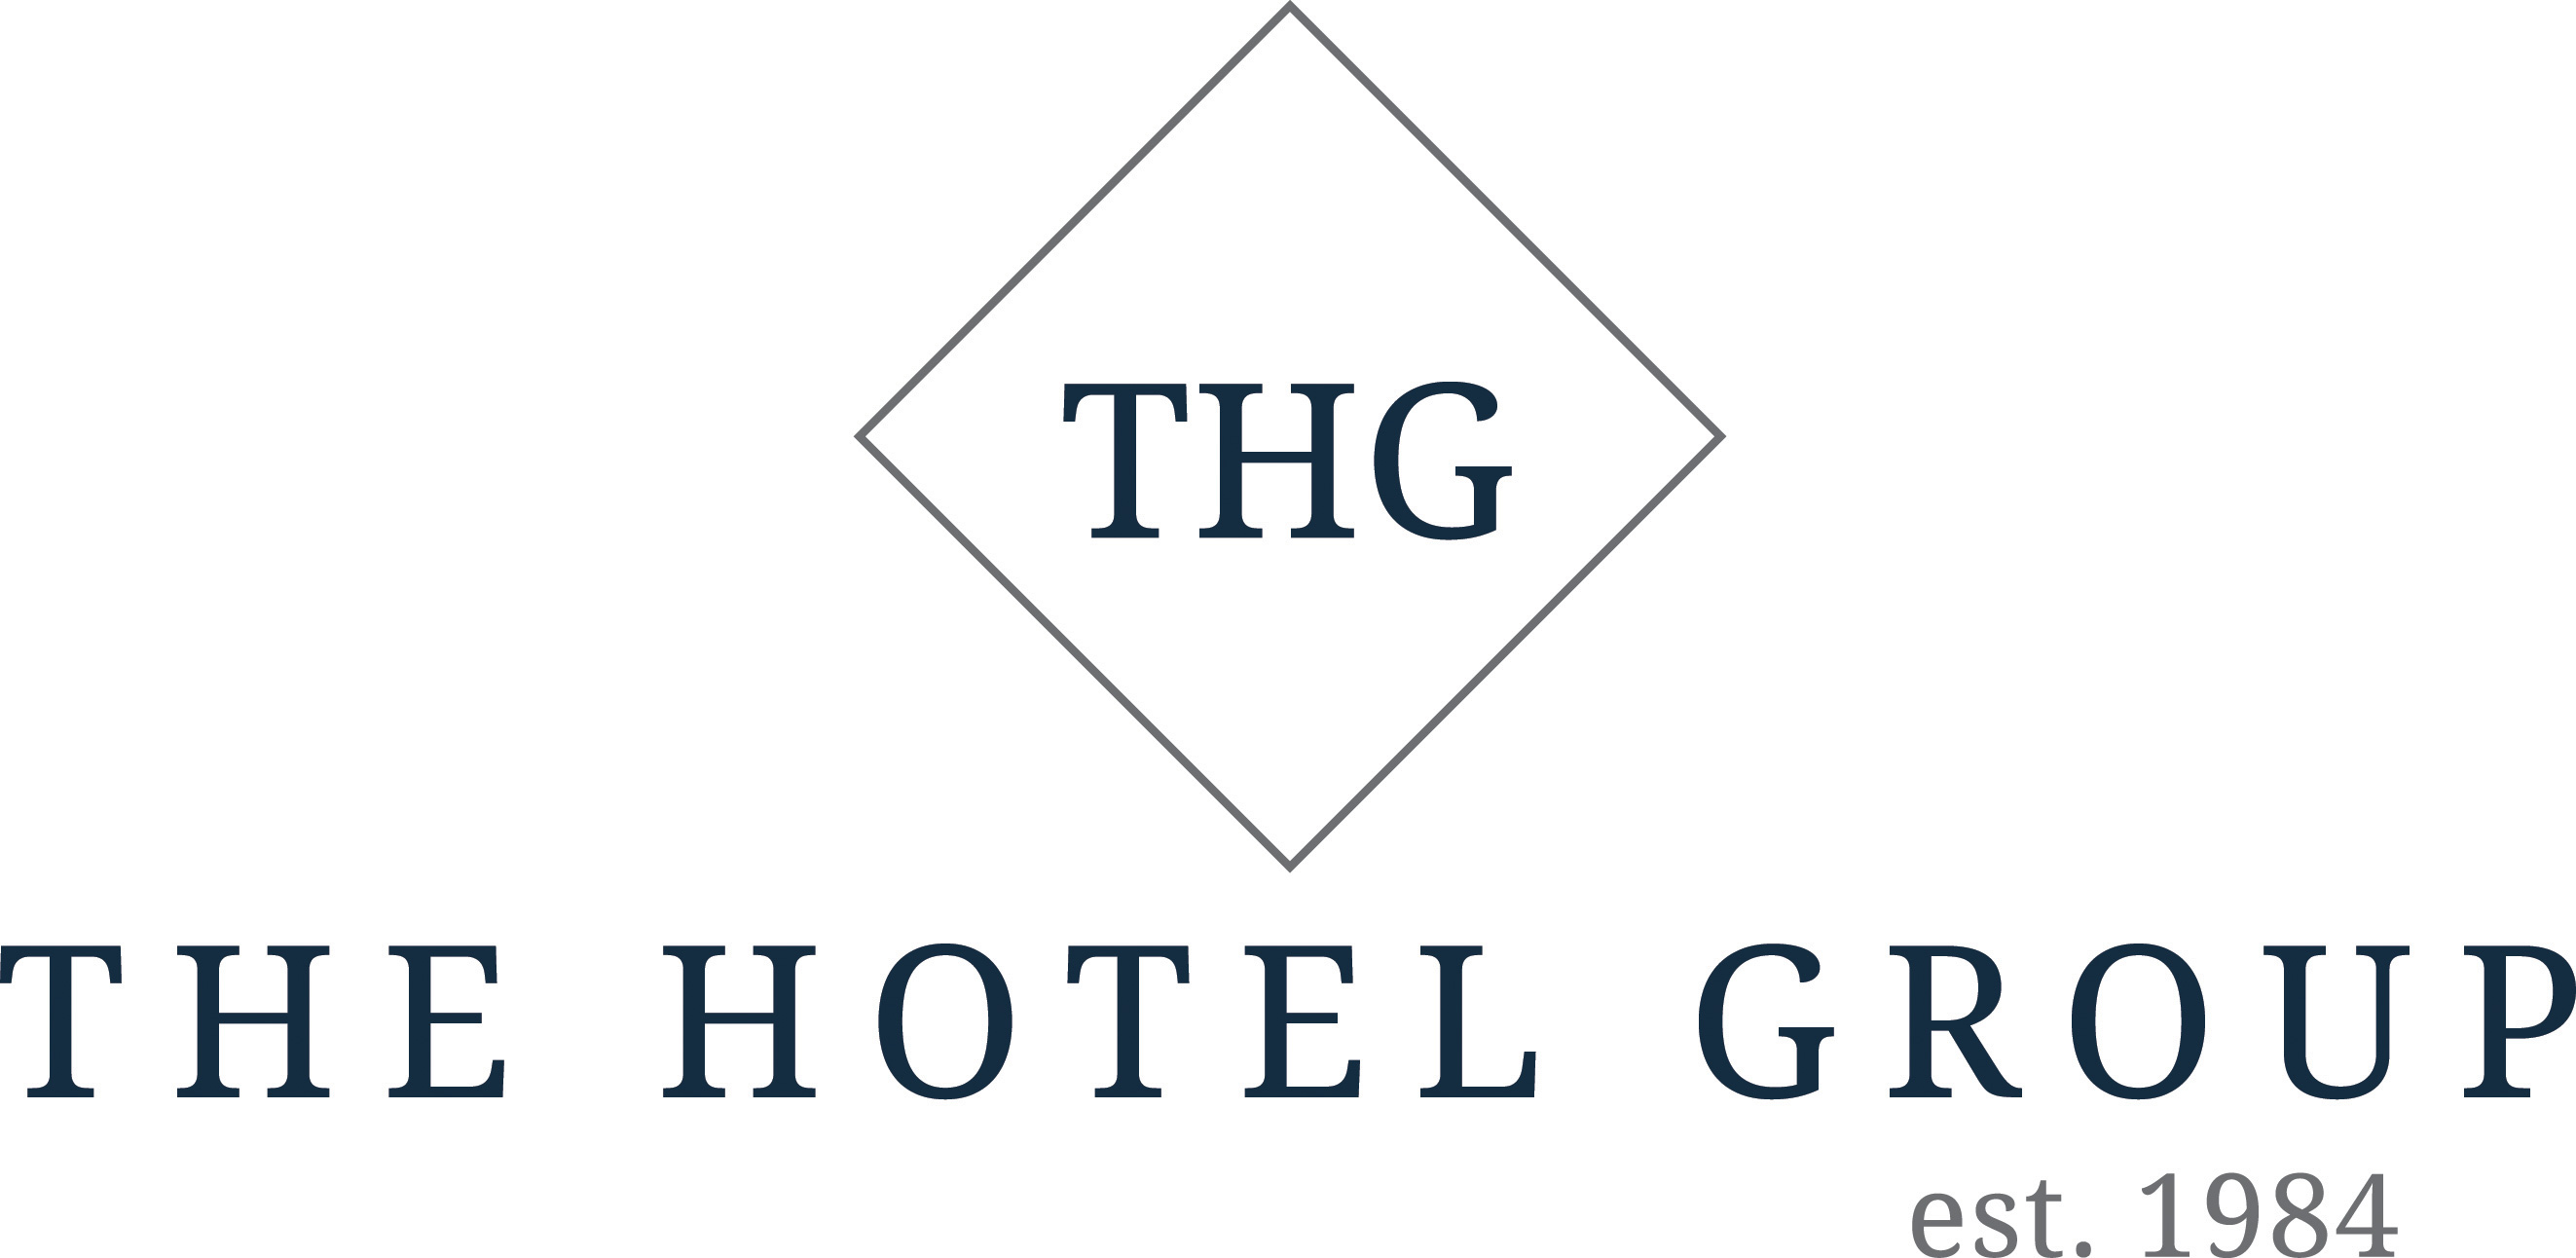 The Hotel Group